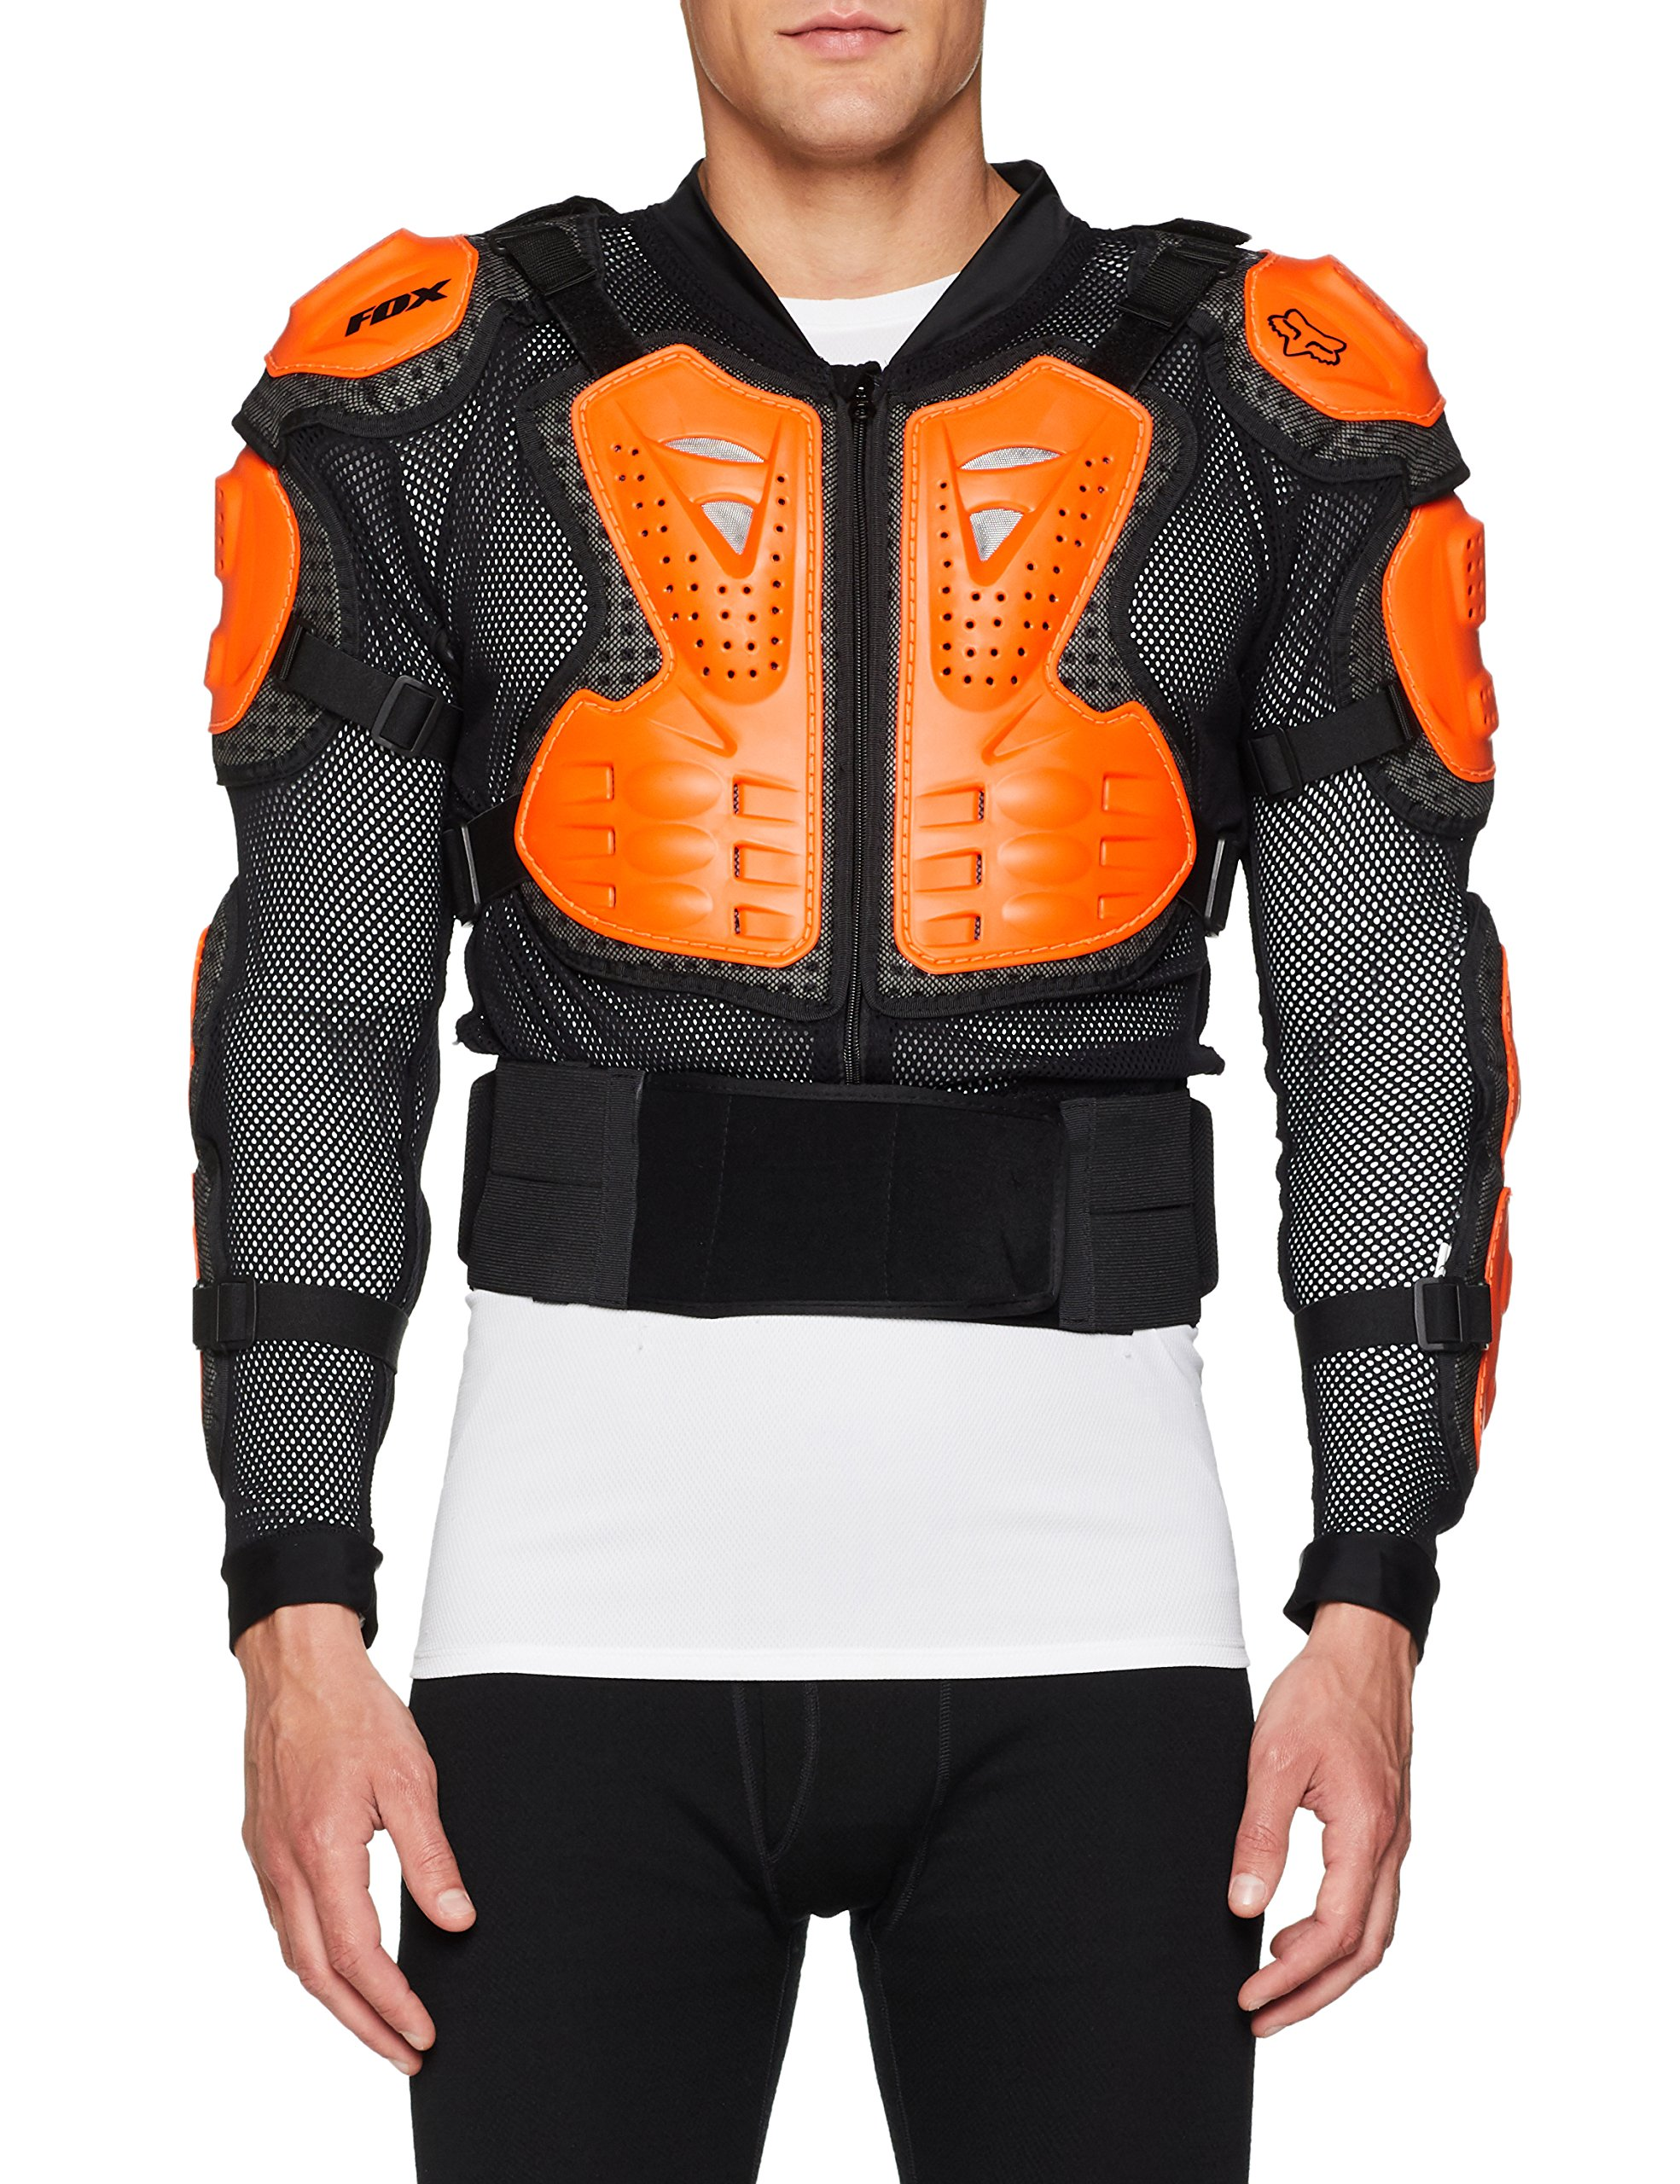 Fox Racing Titan Sport Jacket-Black/Orange-L by Fox Racing (Image #1)